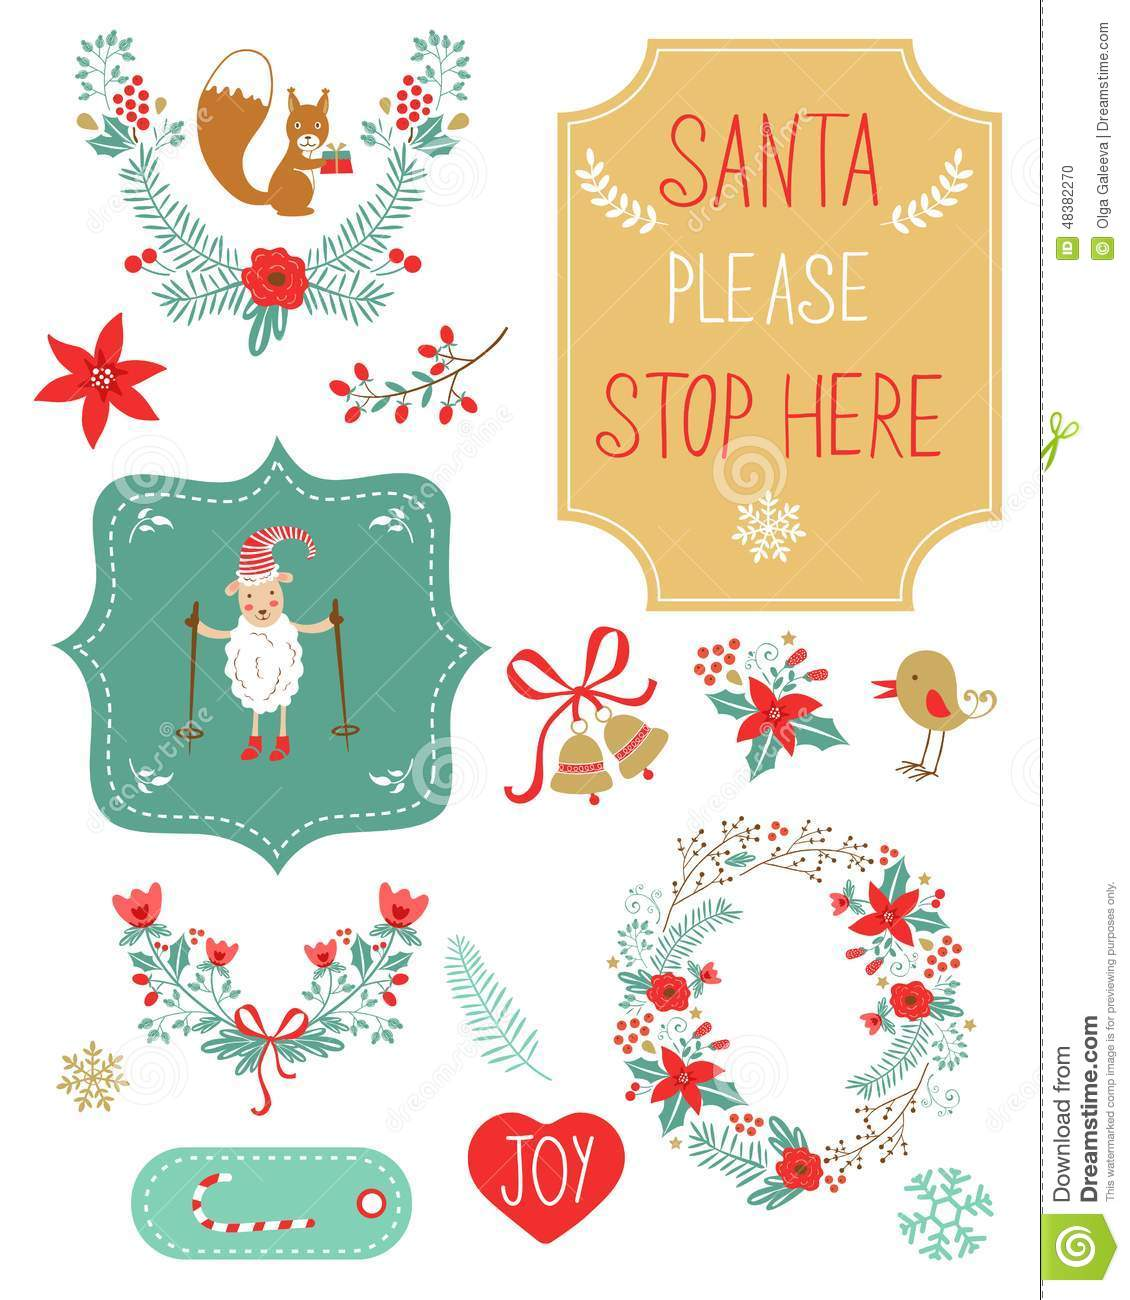 Cute Christmas Clipart Stock Illustration - Image: 48382270